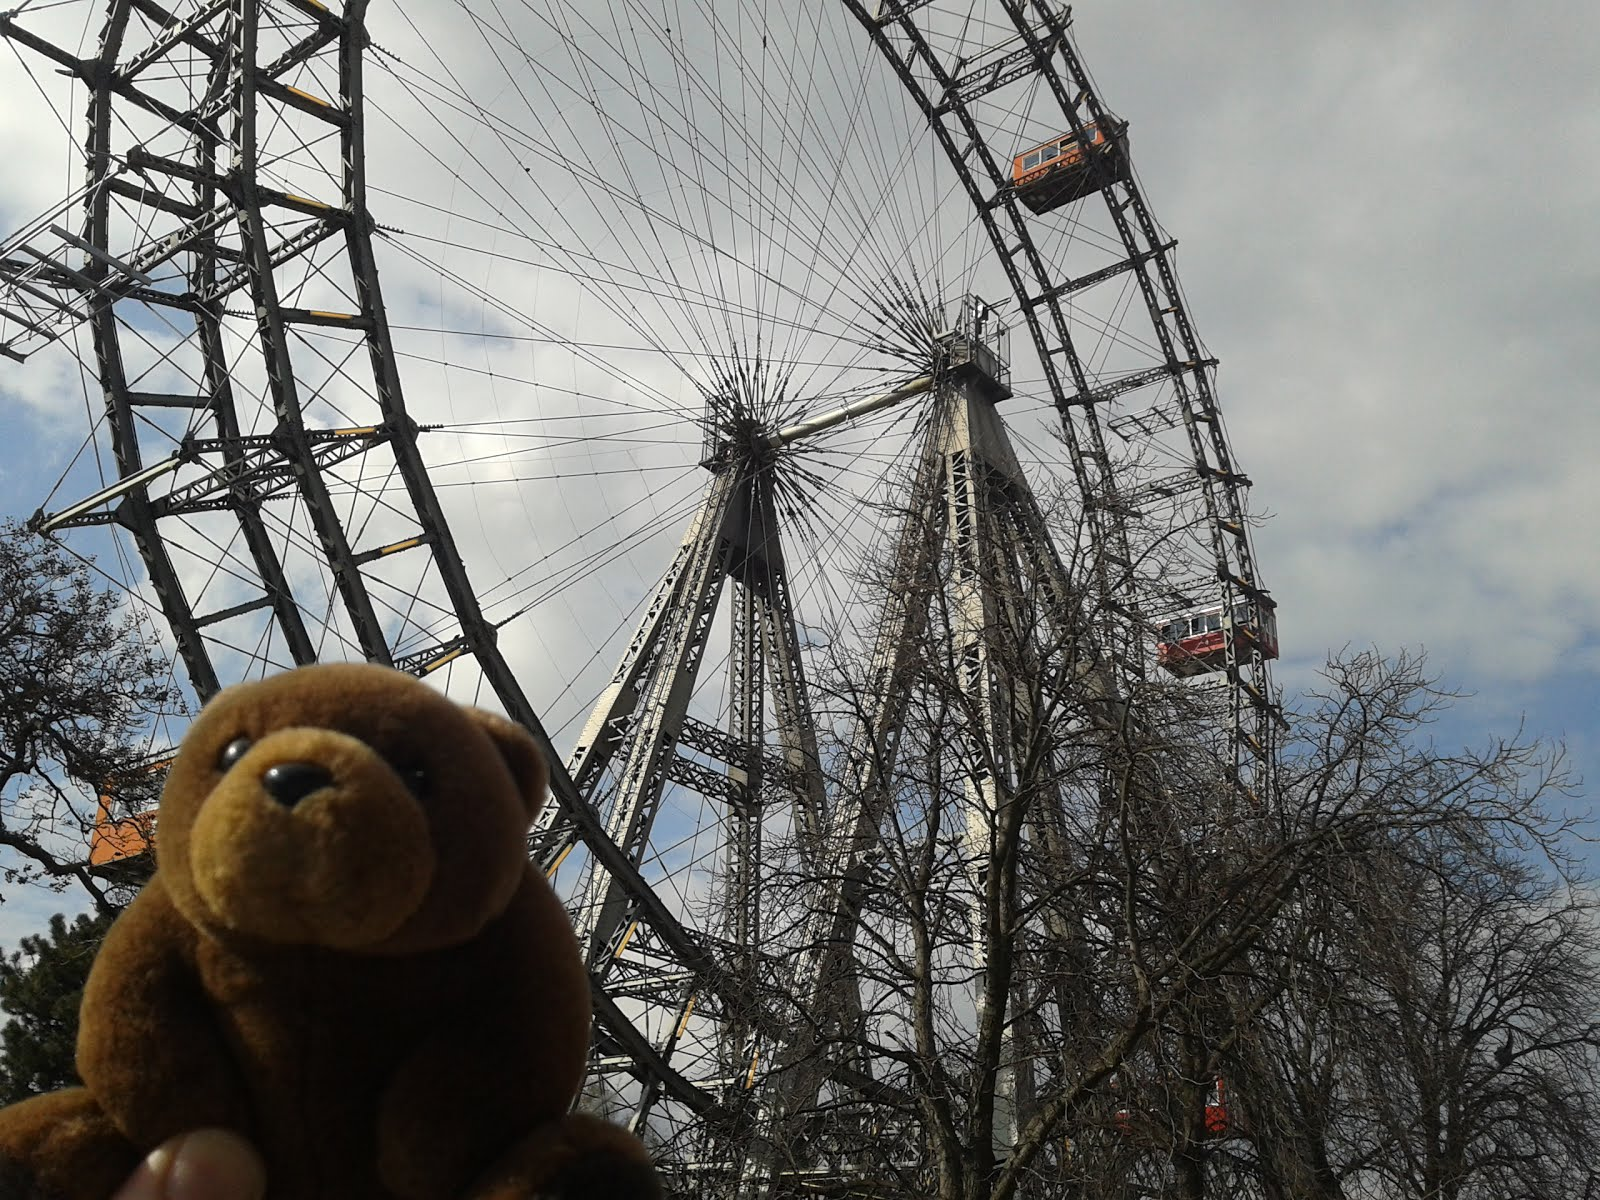 Teddy Bear in Prater, Vienna